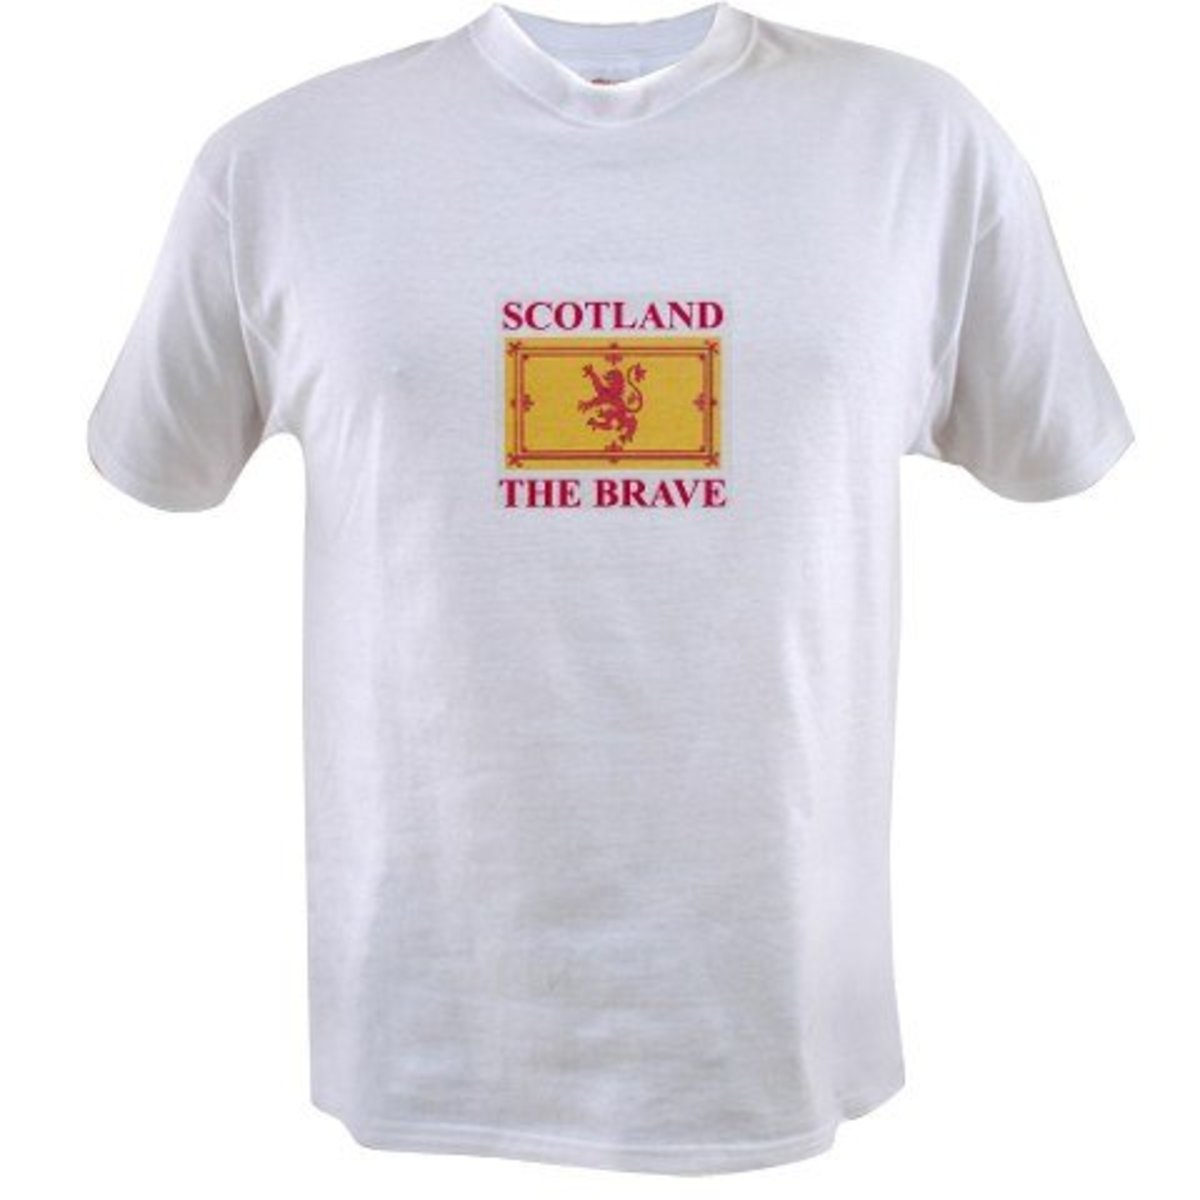 There are a great many products representing Scotland which can be purchased from reputable online retailers. This also saves you having to carry them home in your baggage.